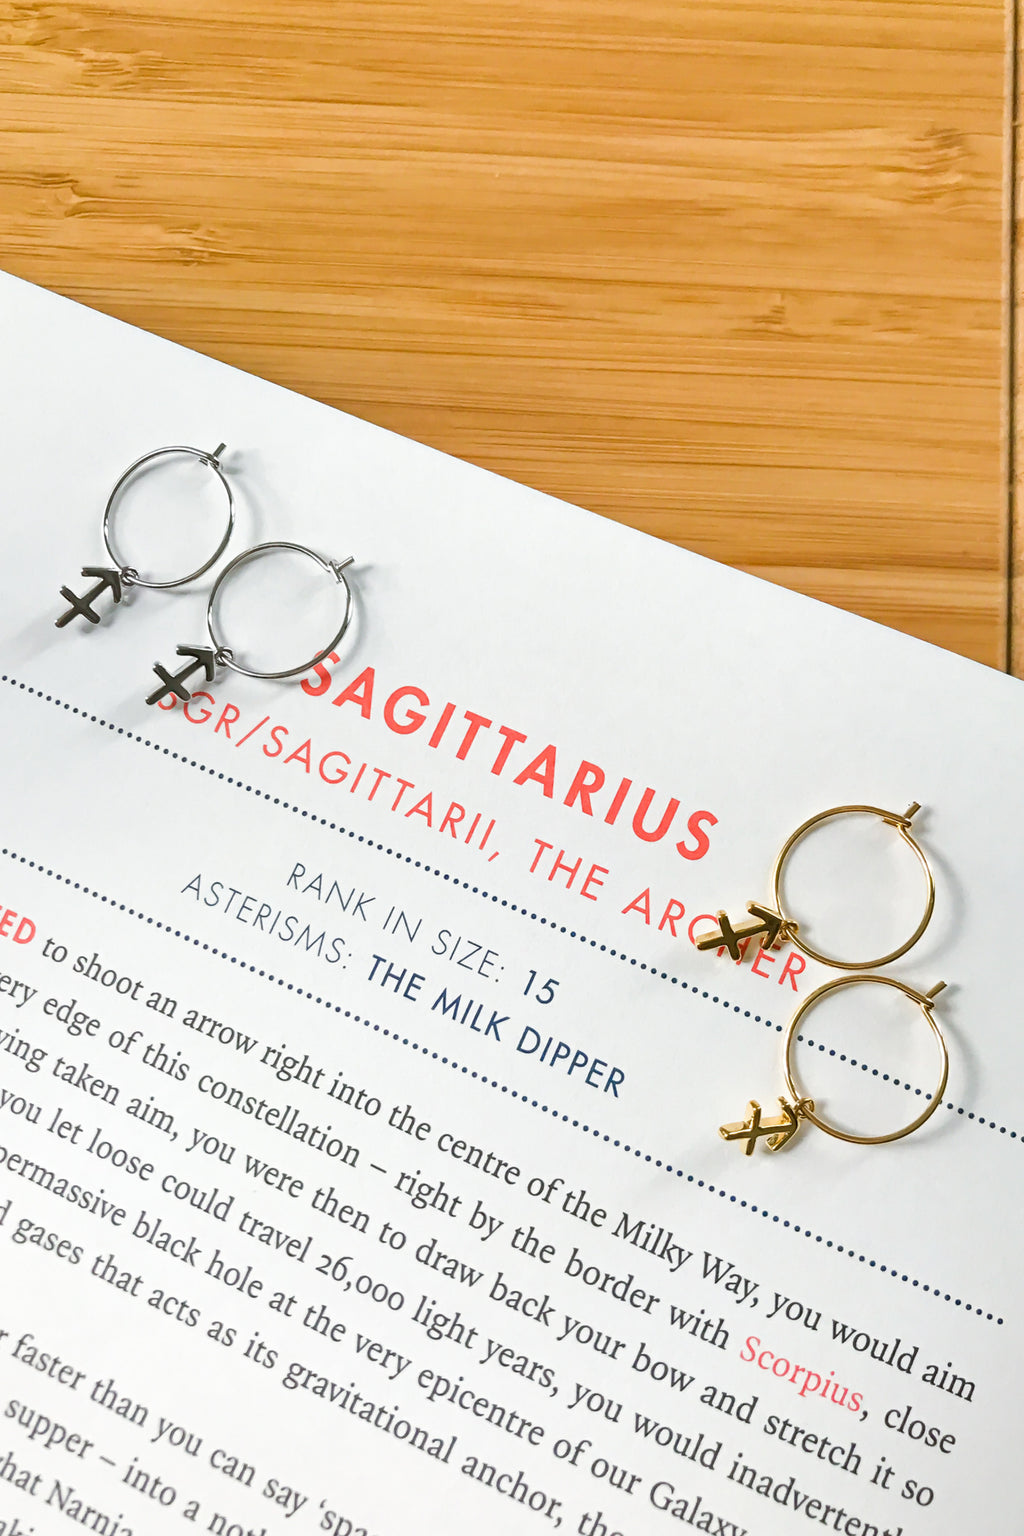 Sagittarius mini hoop earrings